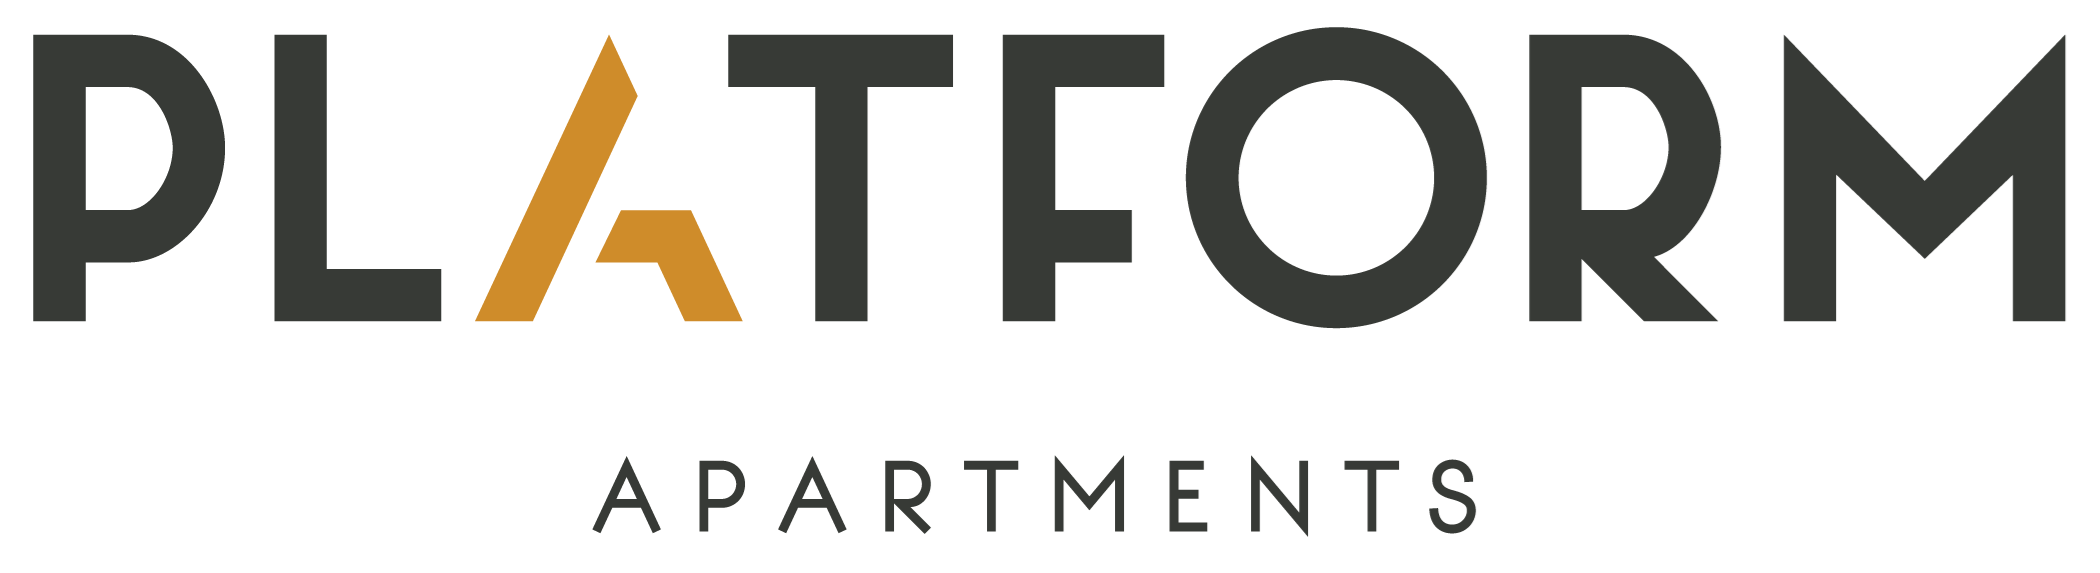 Logo for Platform Apartments in Atlanta, GA